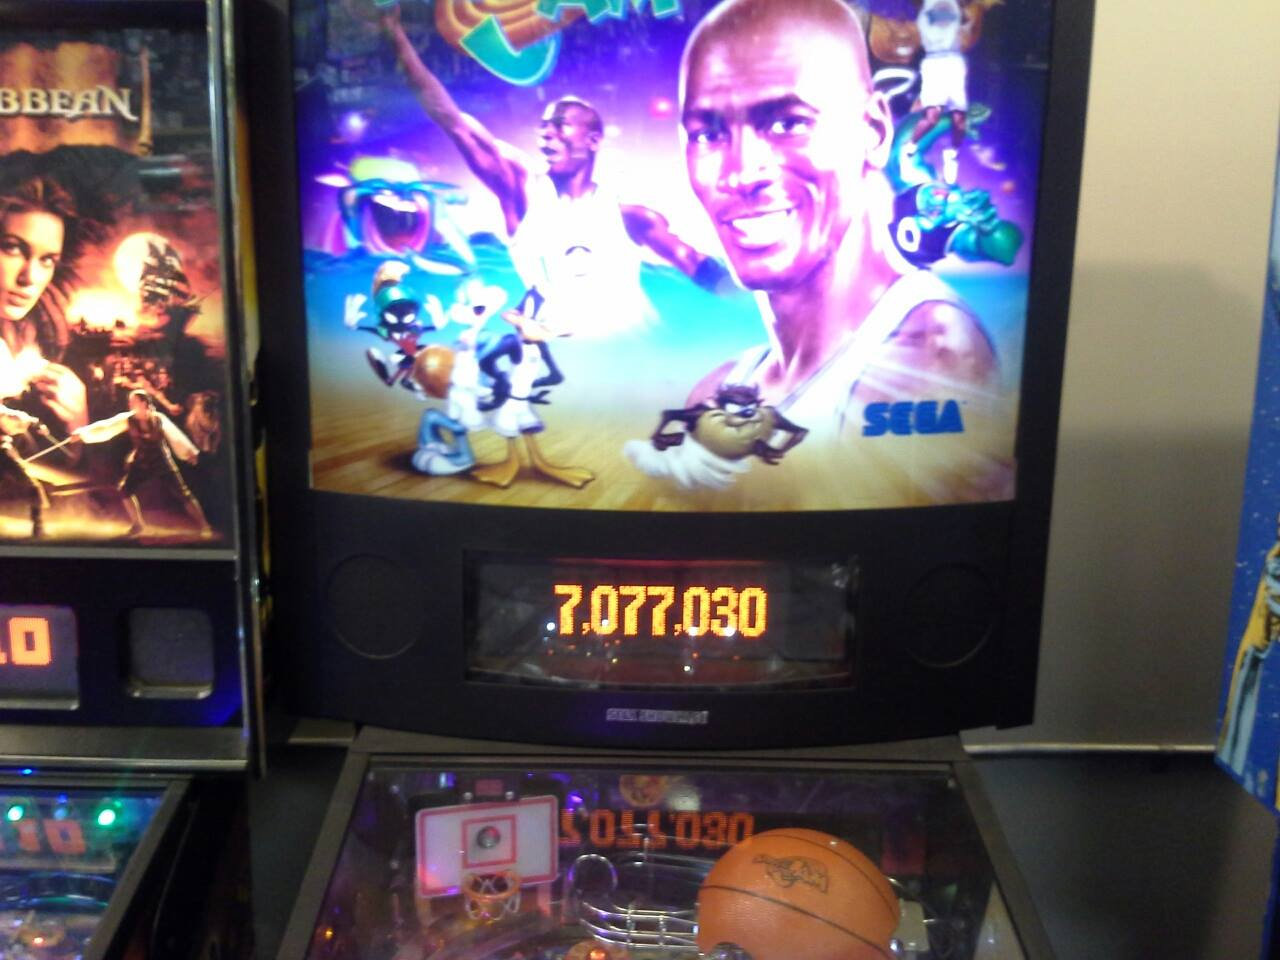 Space Jam 7,077,030 points